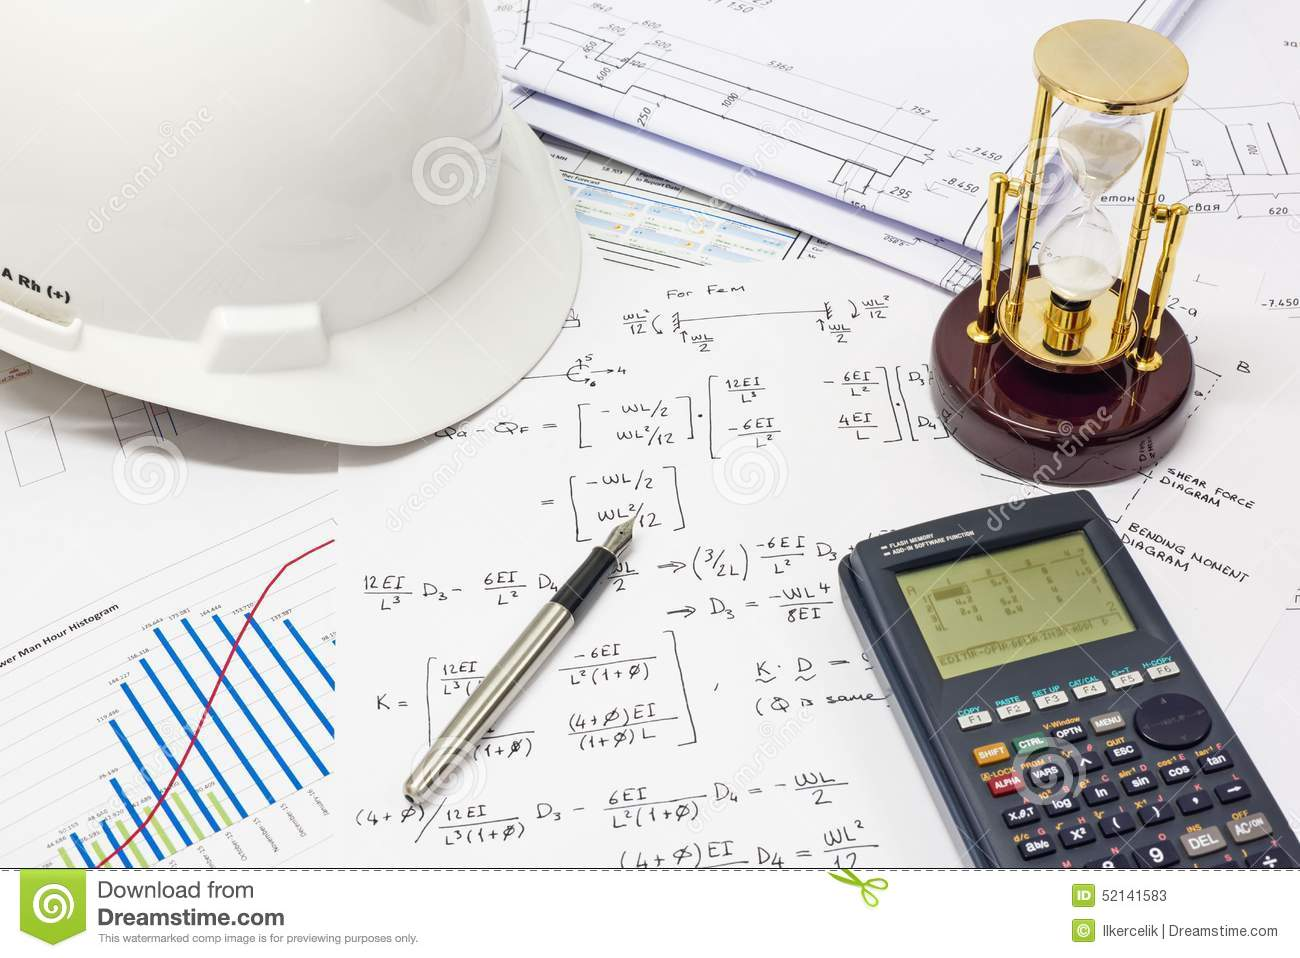 Structural Engineering Calculations : Structural analysis calculations stock image of